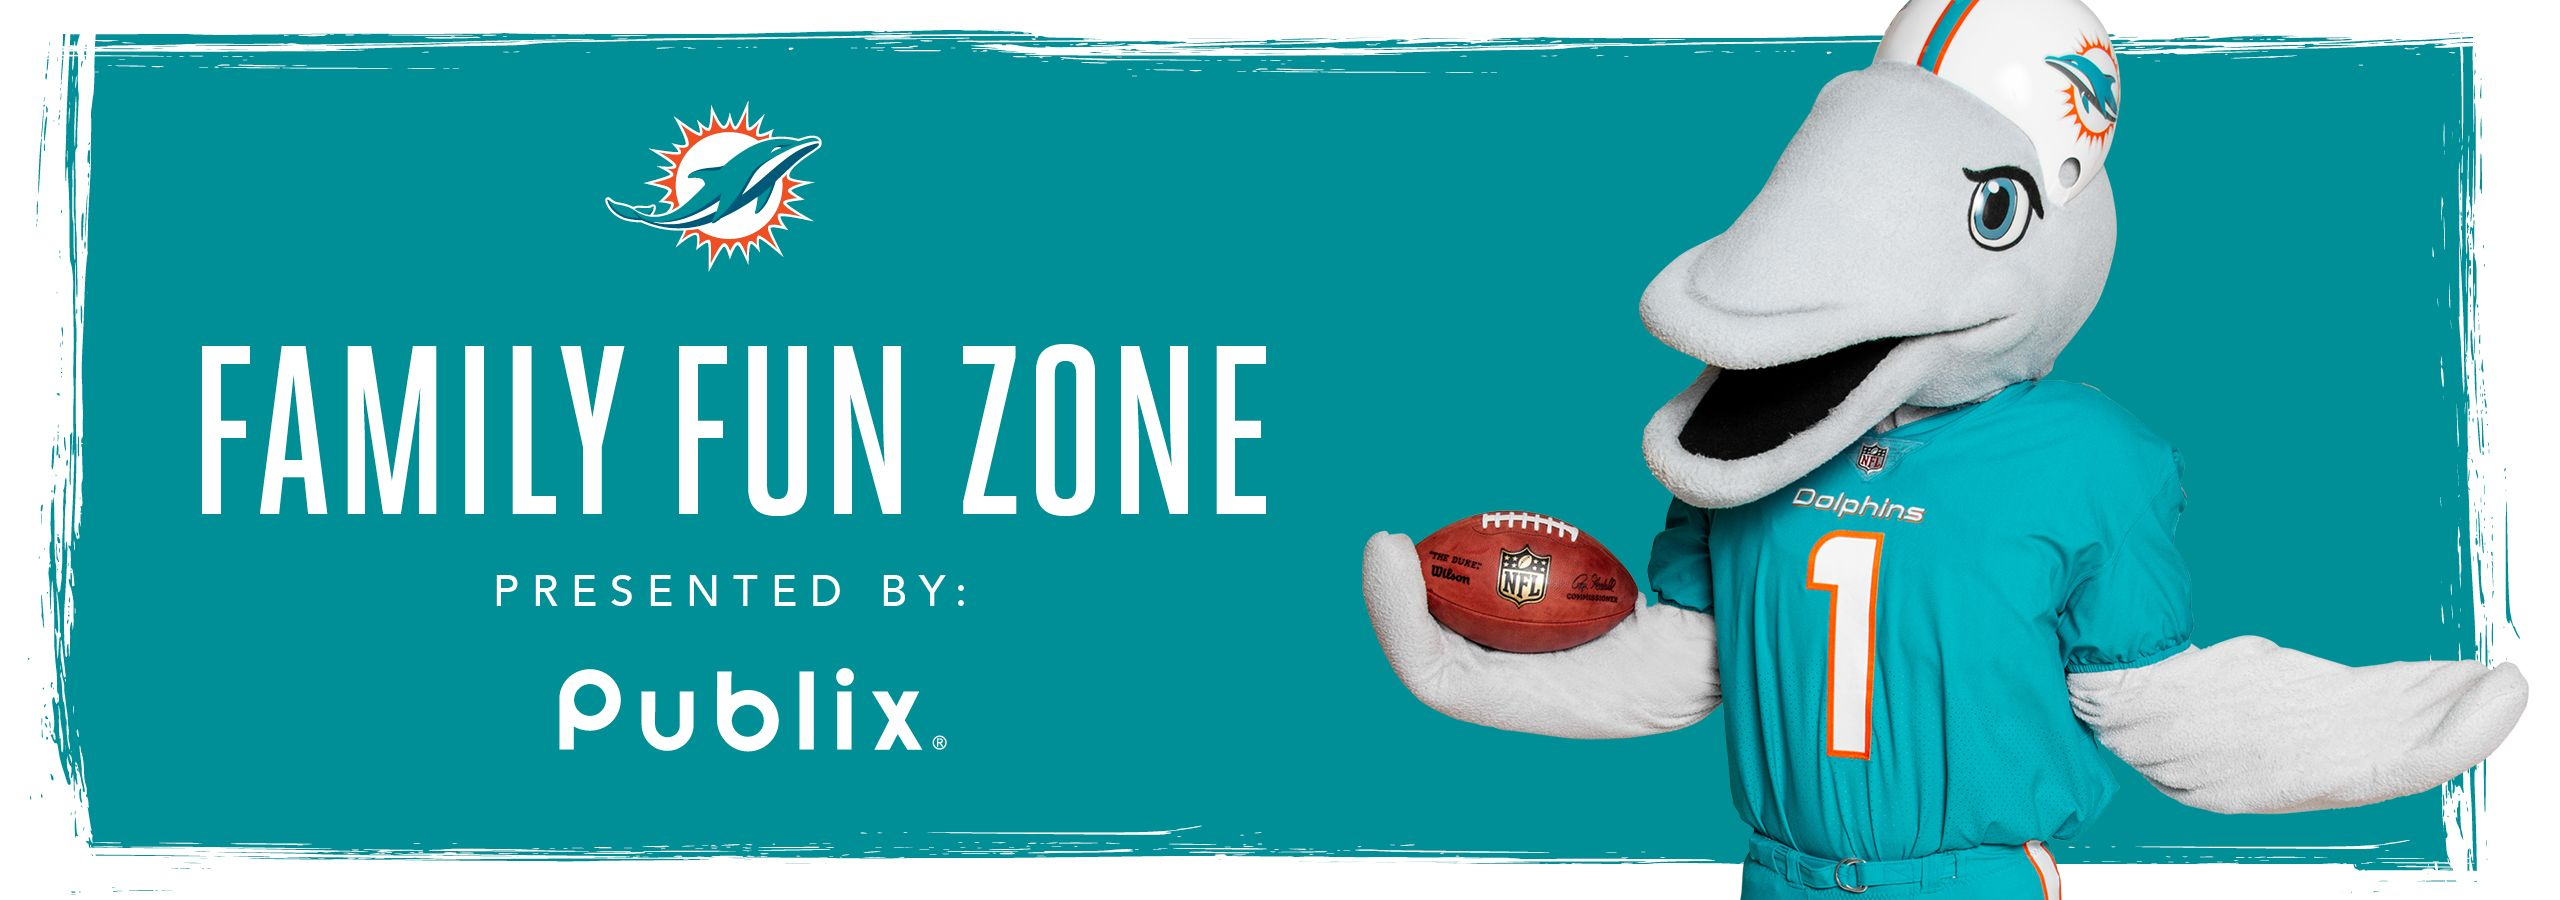 Graphic: Header - Family Fun Zone Presented By Publix